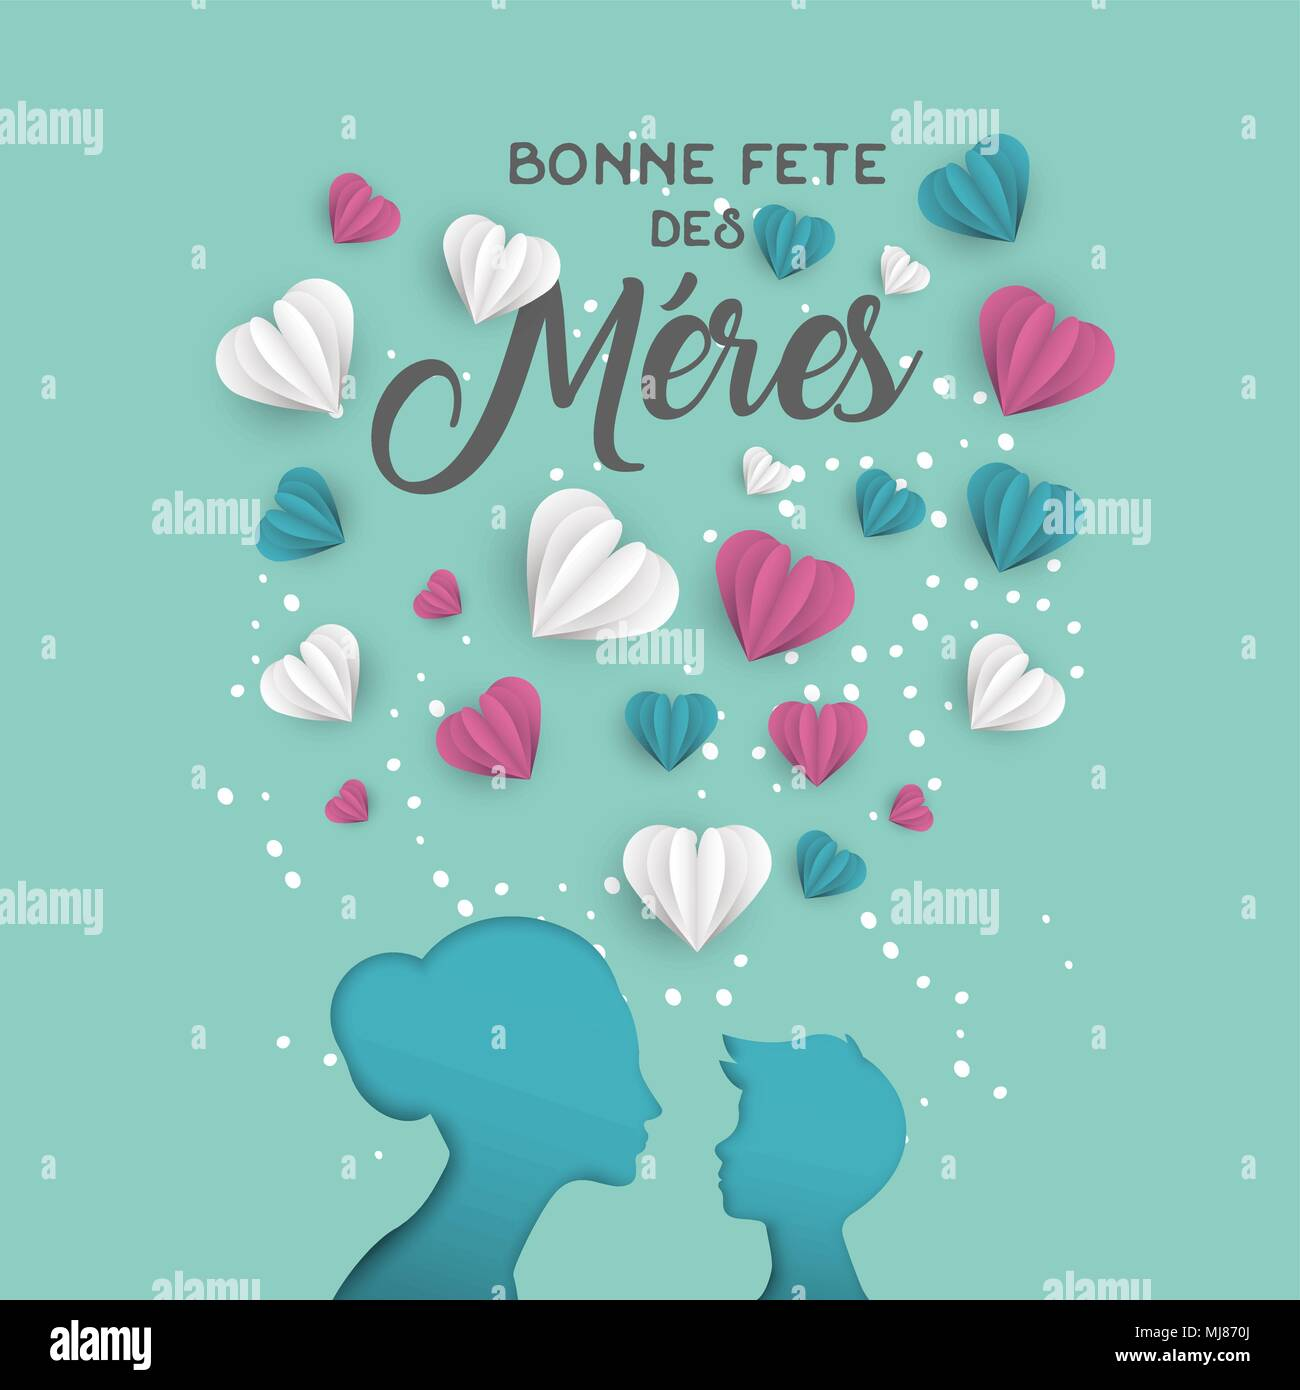 Happy mothers day holiday greeting card illustration in french happy mothers day holiday greeting card illustration in french language pink paper cut mom and little boy silhouette cutout with 3d heart shape paper m4hsunfo